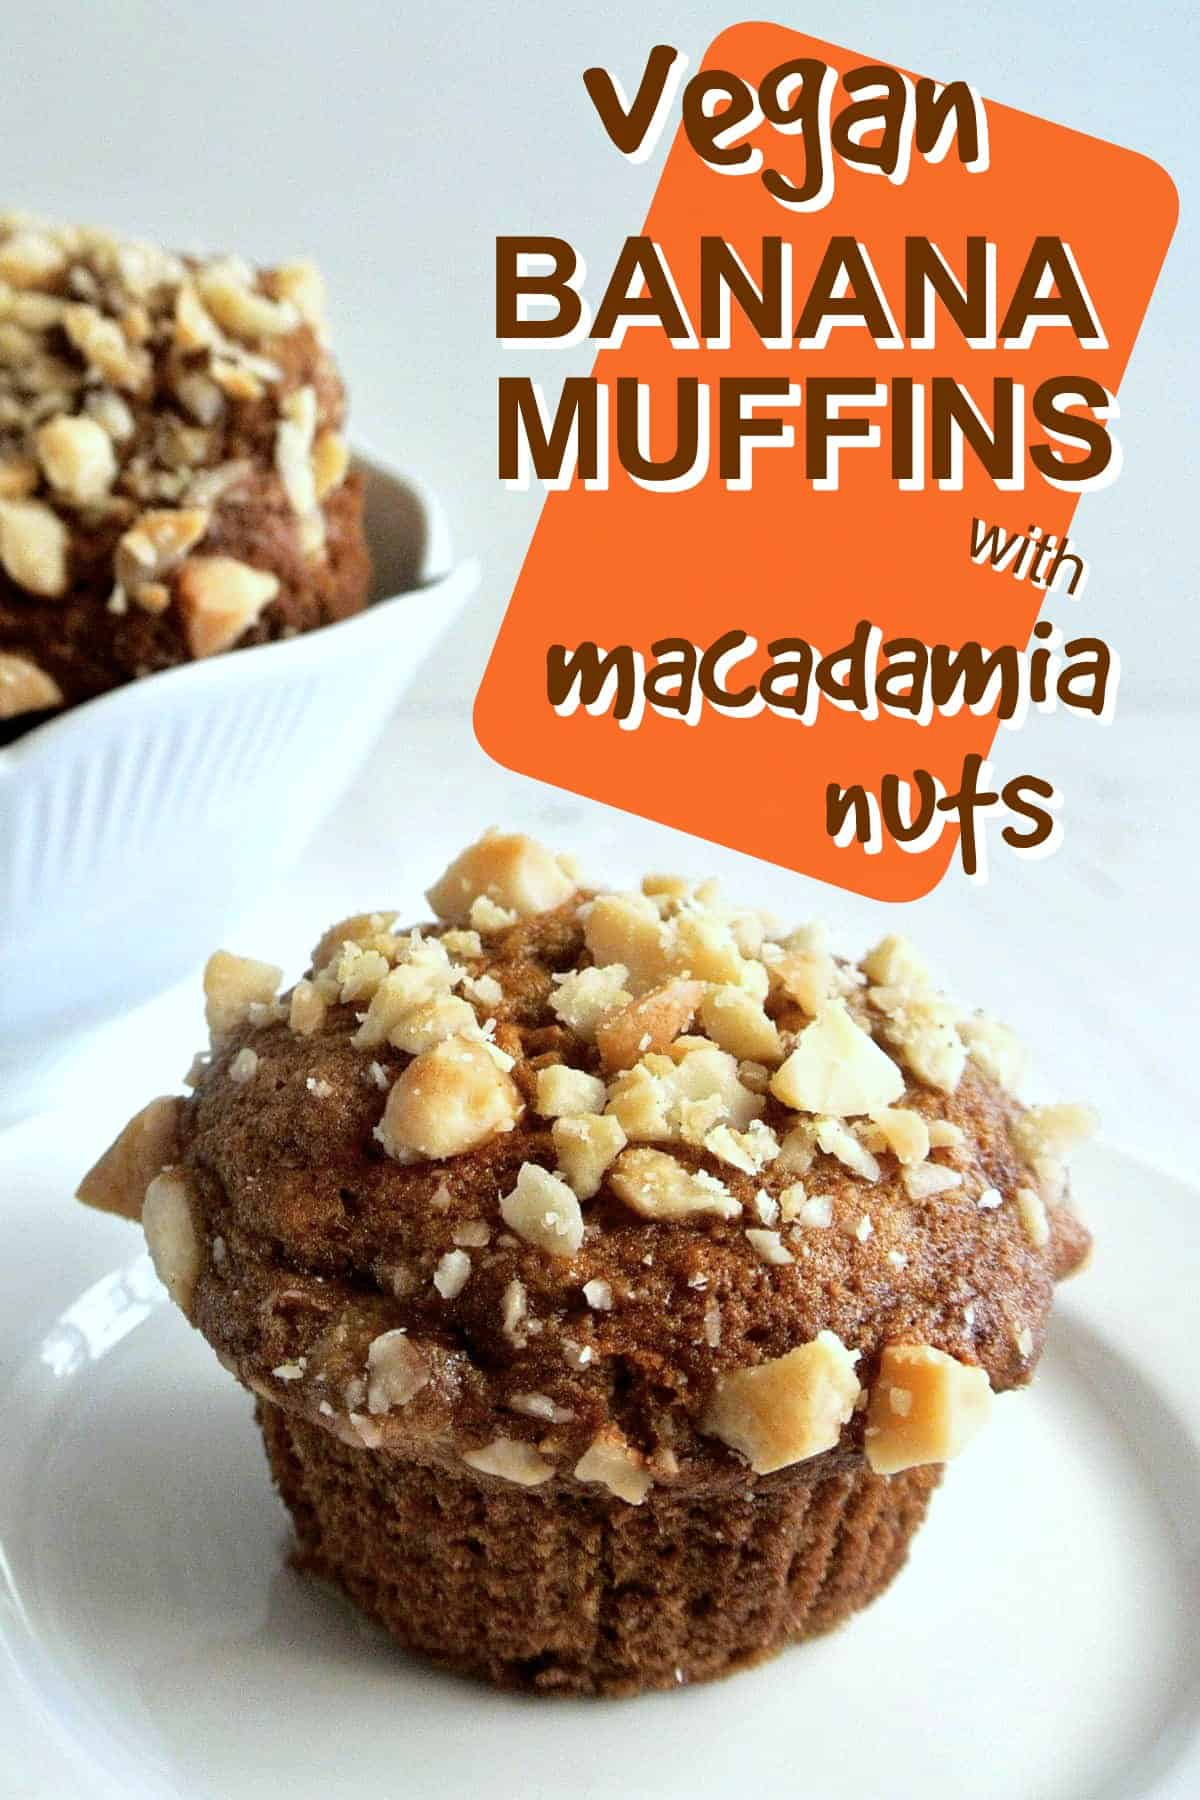 Center vegan banana muffin sprinkled with chopped nuts against a white background. Text above with orange overlay for pinning.